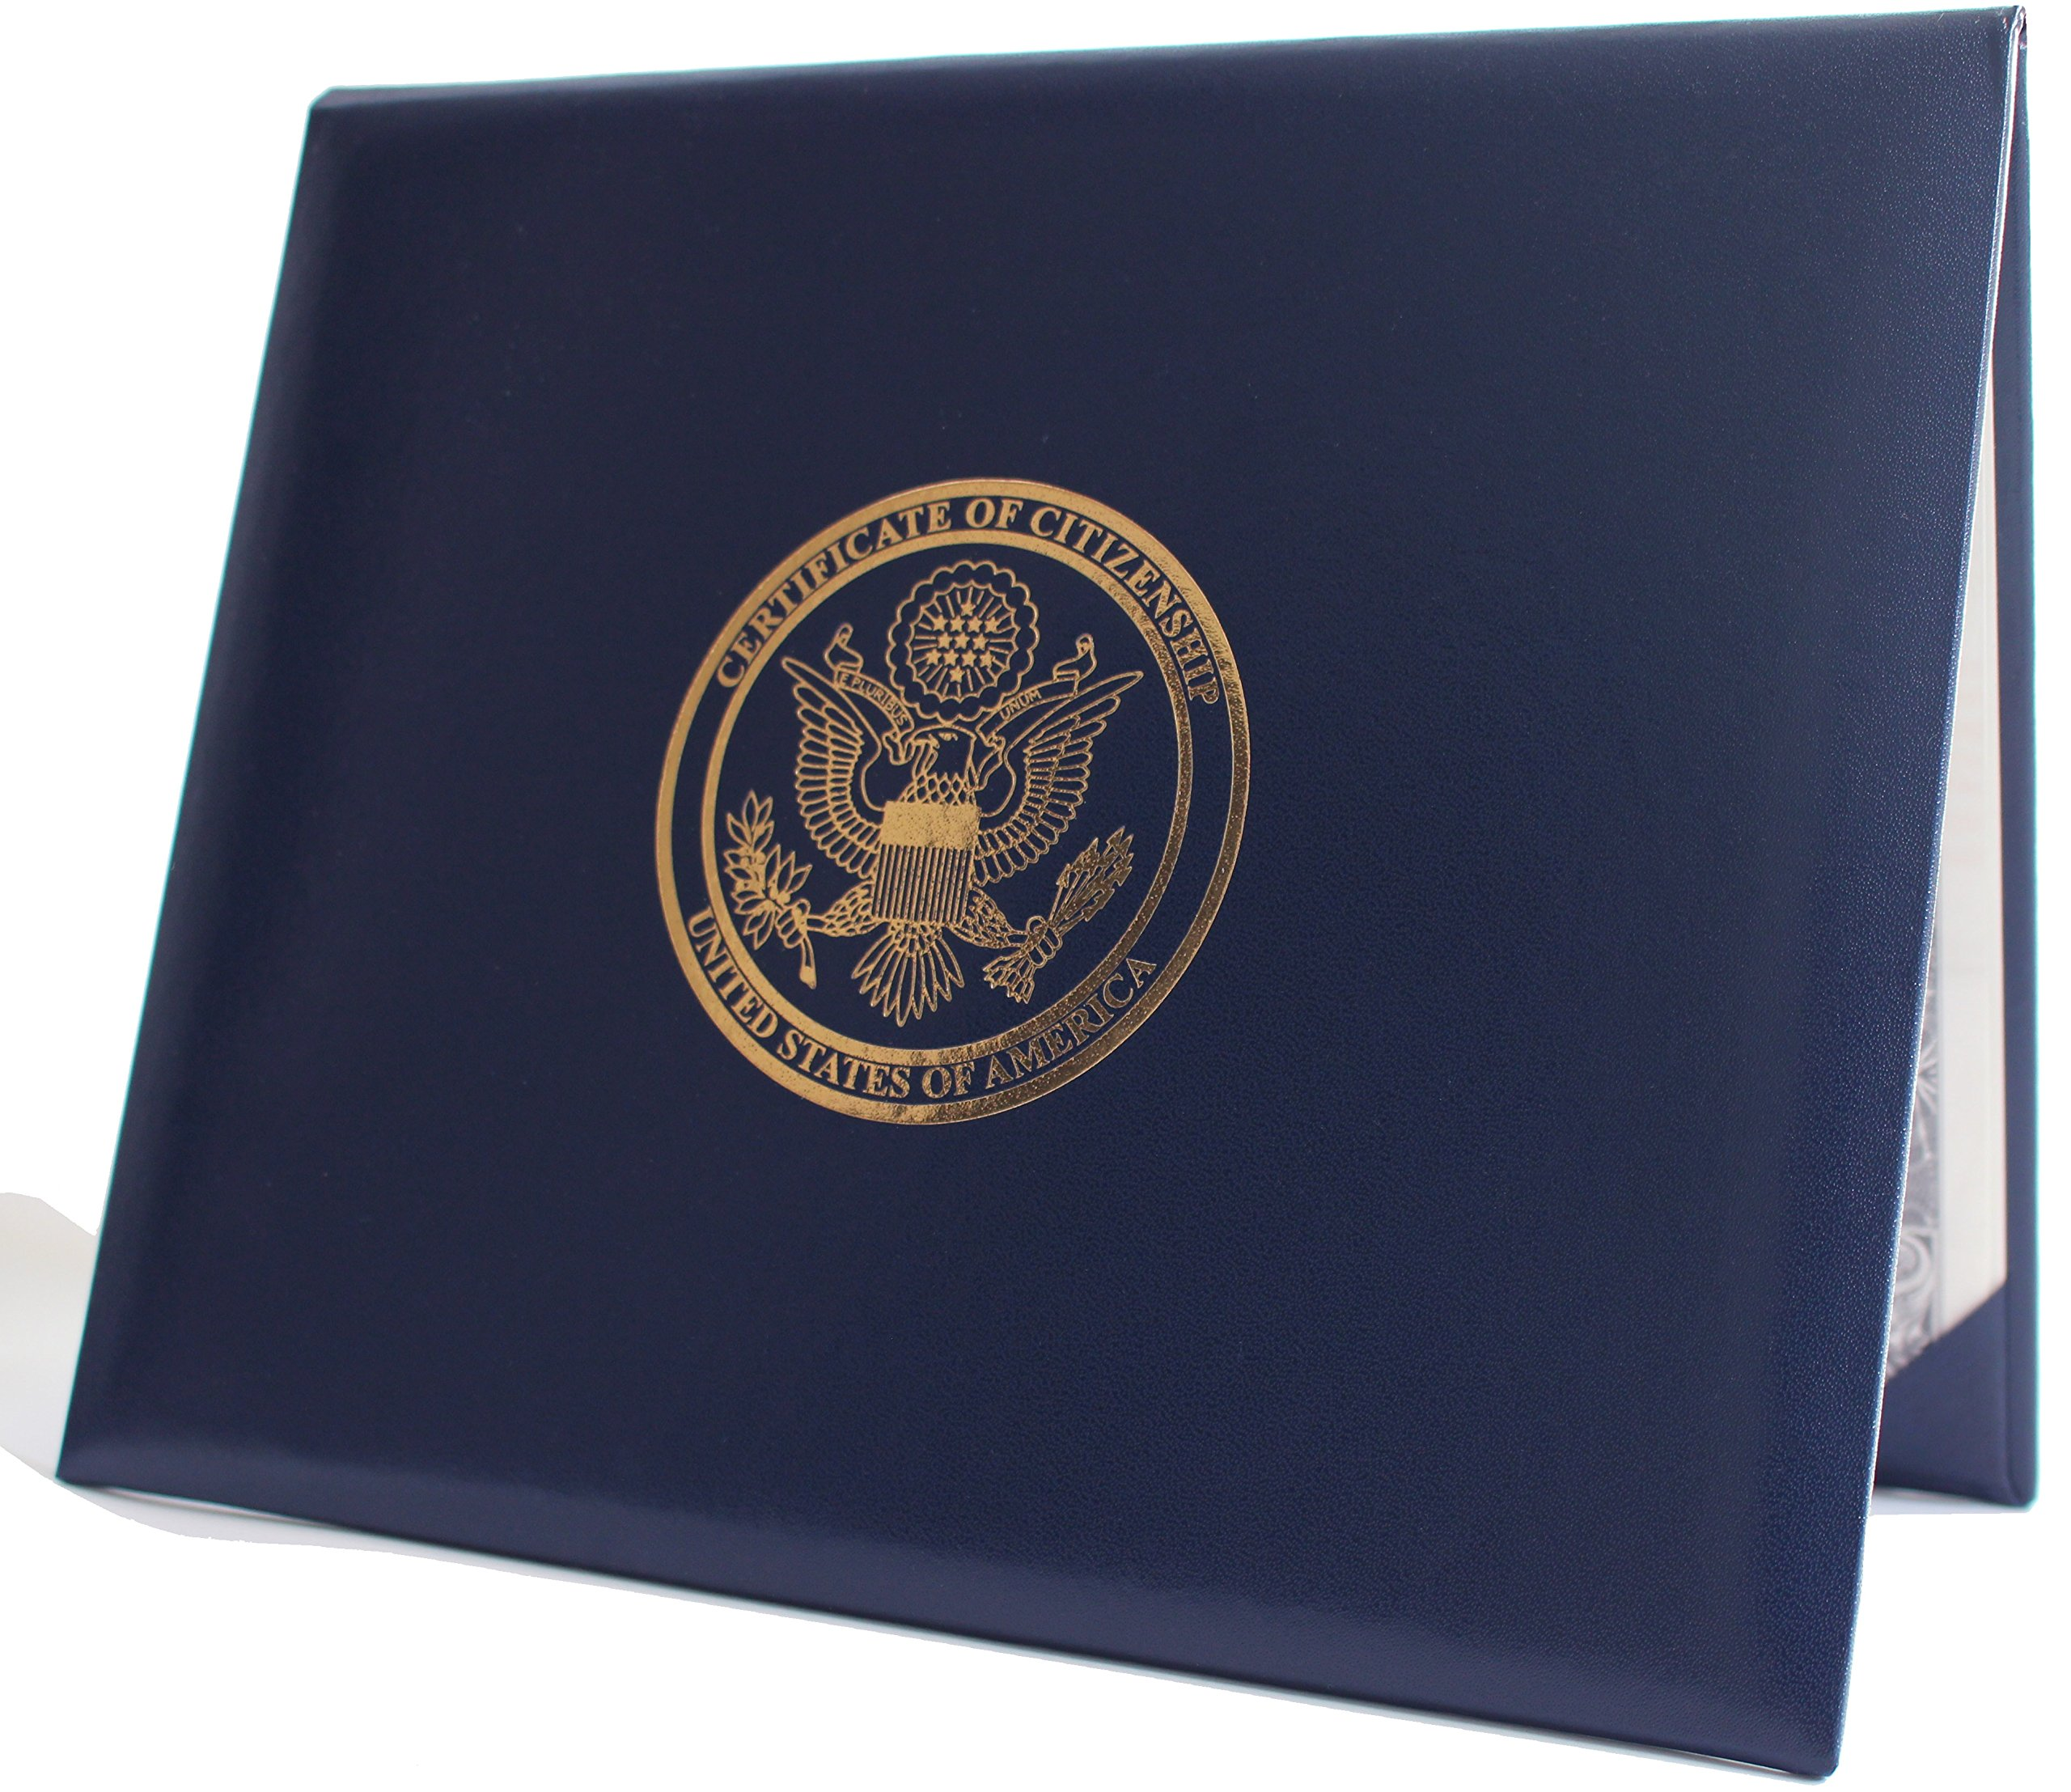 U.S. Citizenship and Naturalization Certificate Padded Holder with Cover. Gold American Eagle Logo 'Certificate of Citizenship', United States of America'. Illustrated Inside with The 14th Amendment